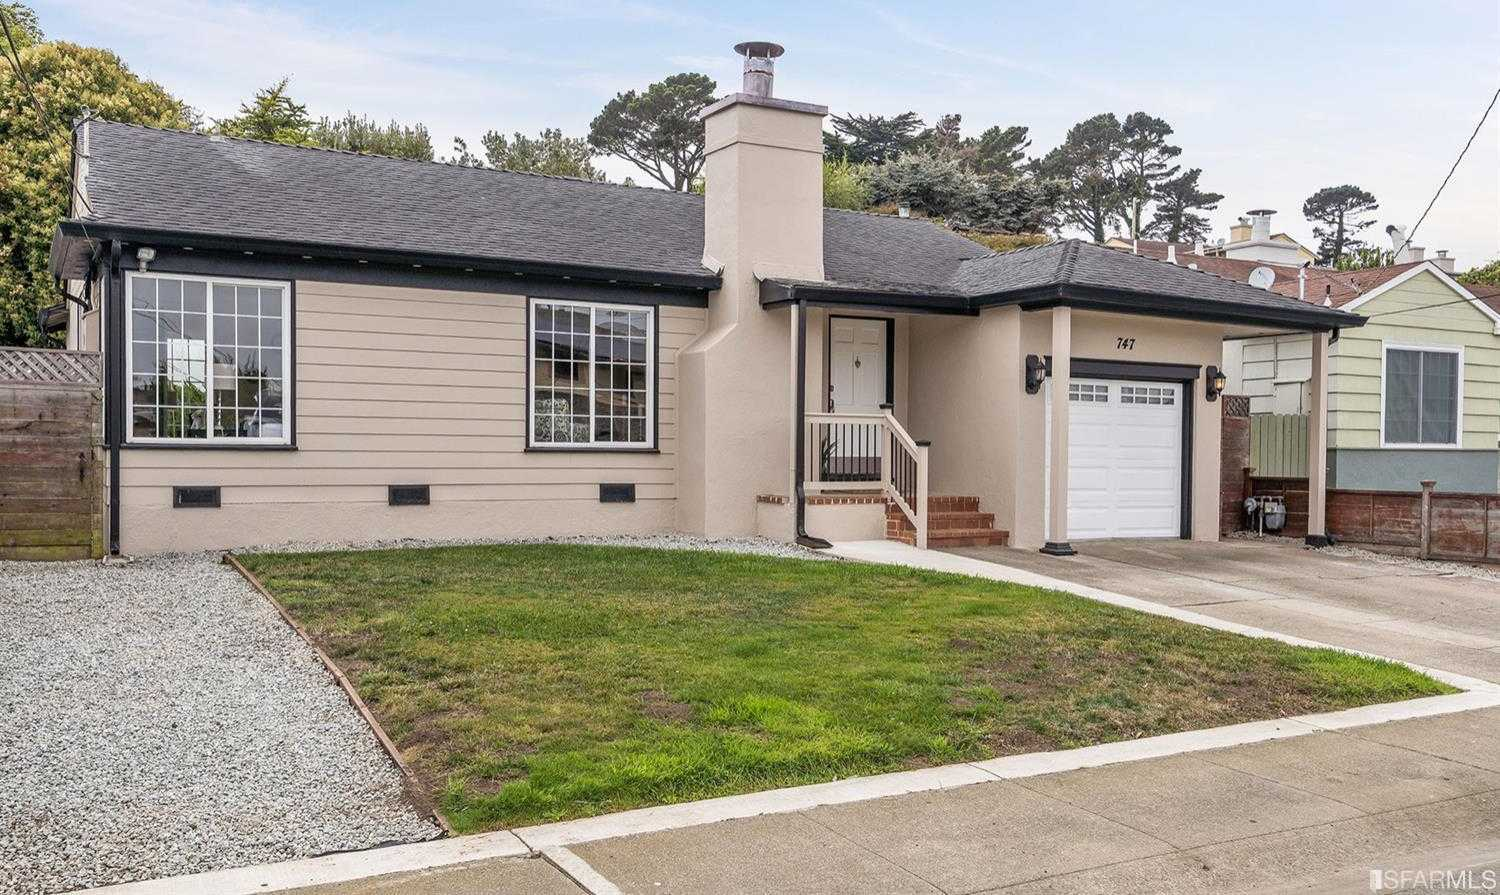 747 Larchmont Drive Daly City, CA 94015